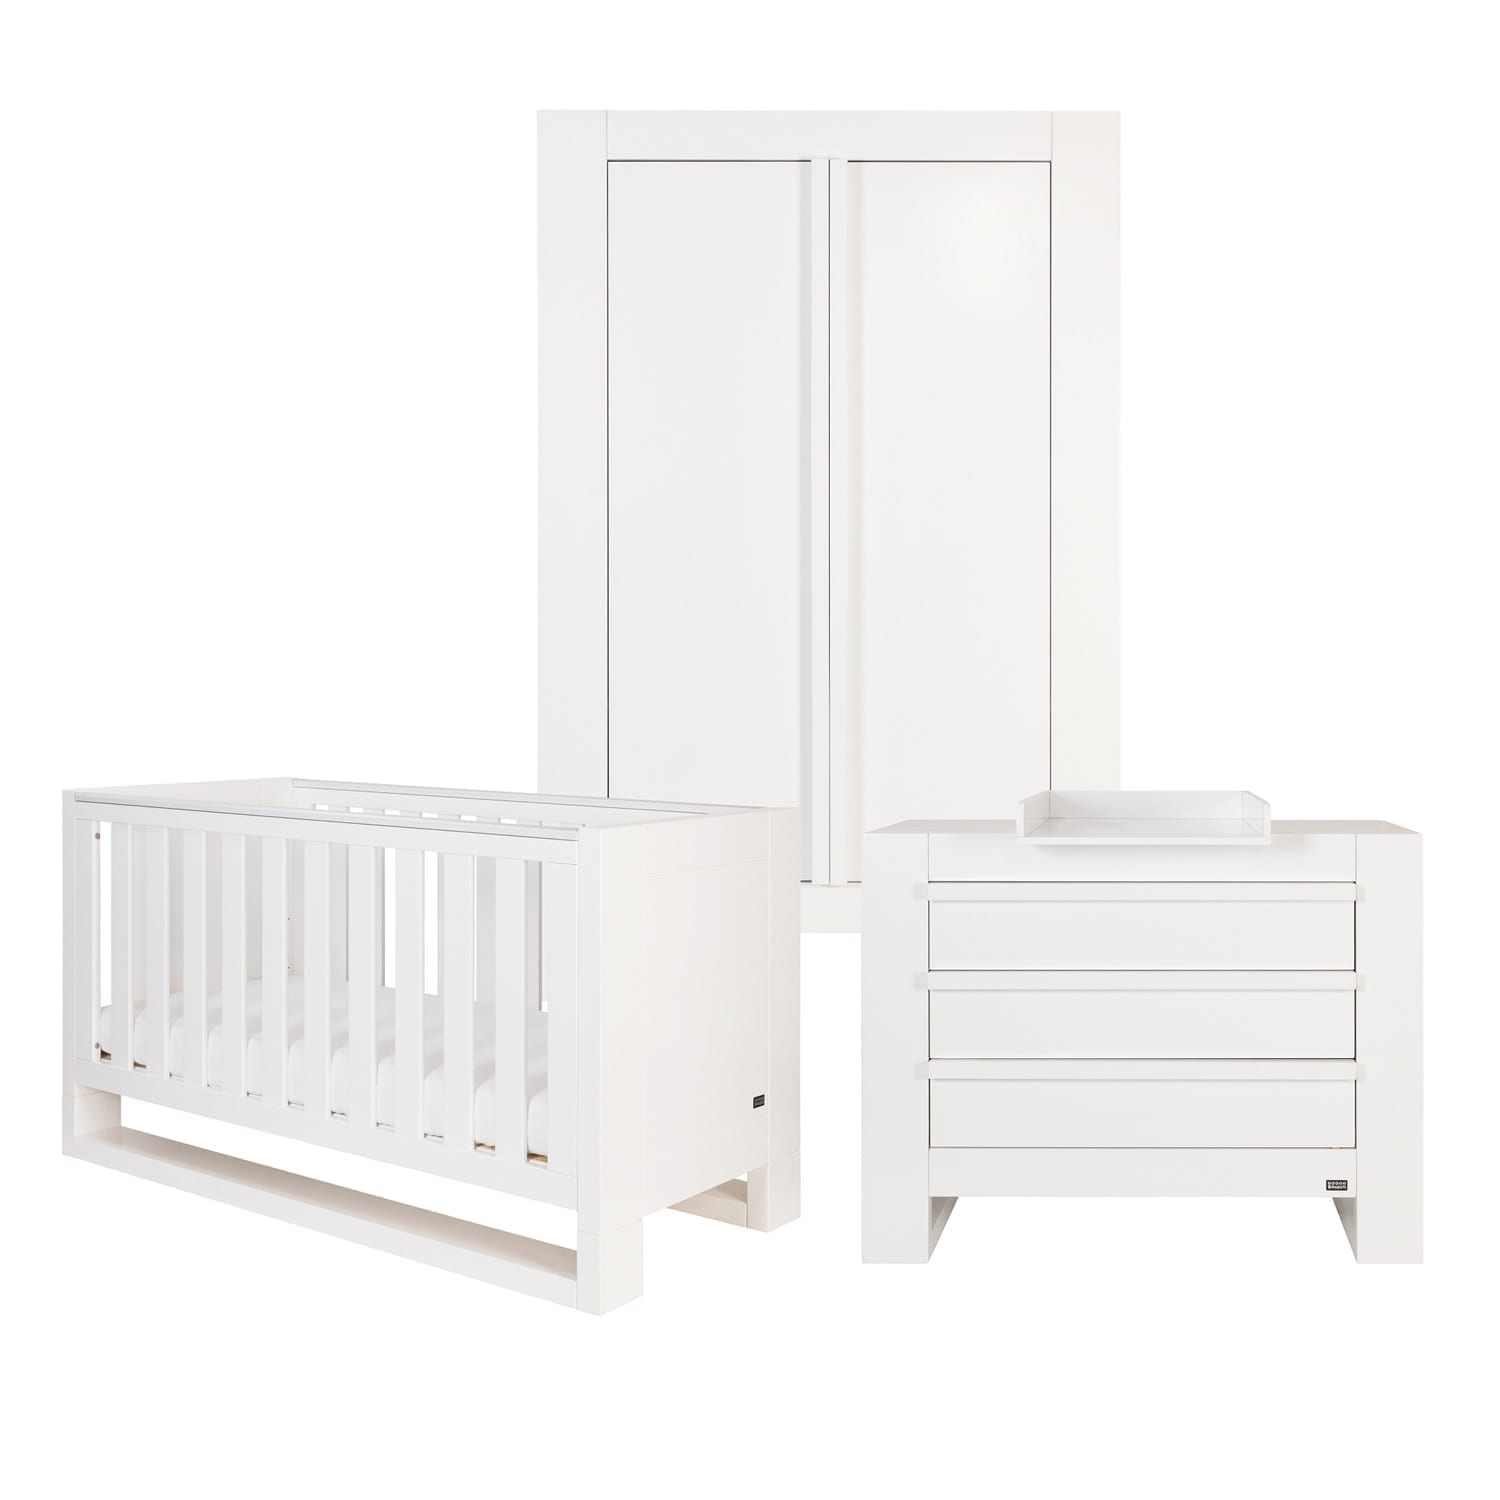 Tutti Bambini Rimini 3 Piece Room Set - High Gloss White